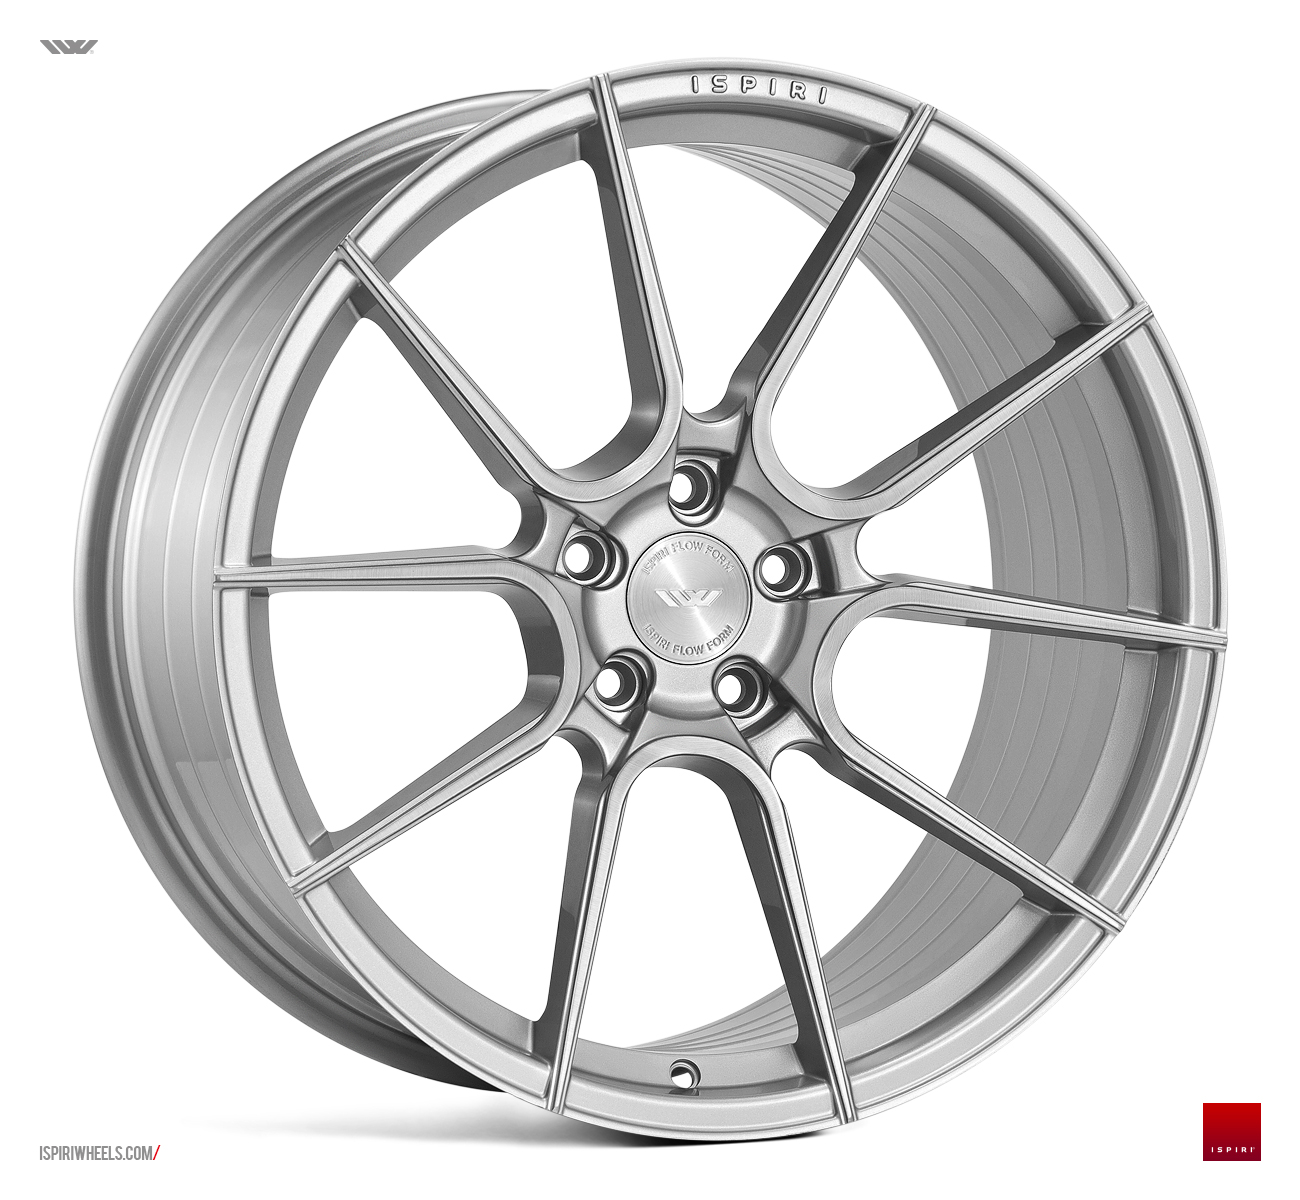 "NEW 19"" ISPIRI FFR6 TWIN 5 SPOKE ALLOYS IN PURE SILVER BRUSHED, WIDER 10"" REAR"